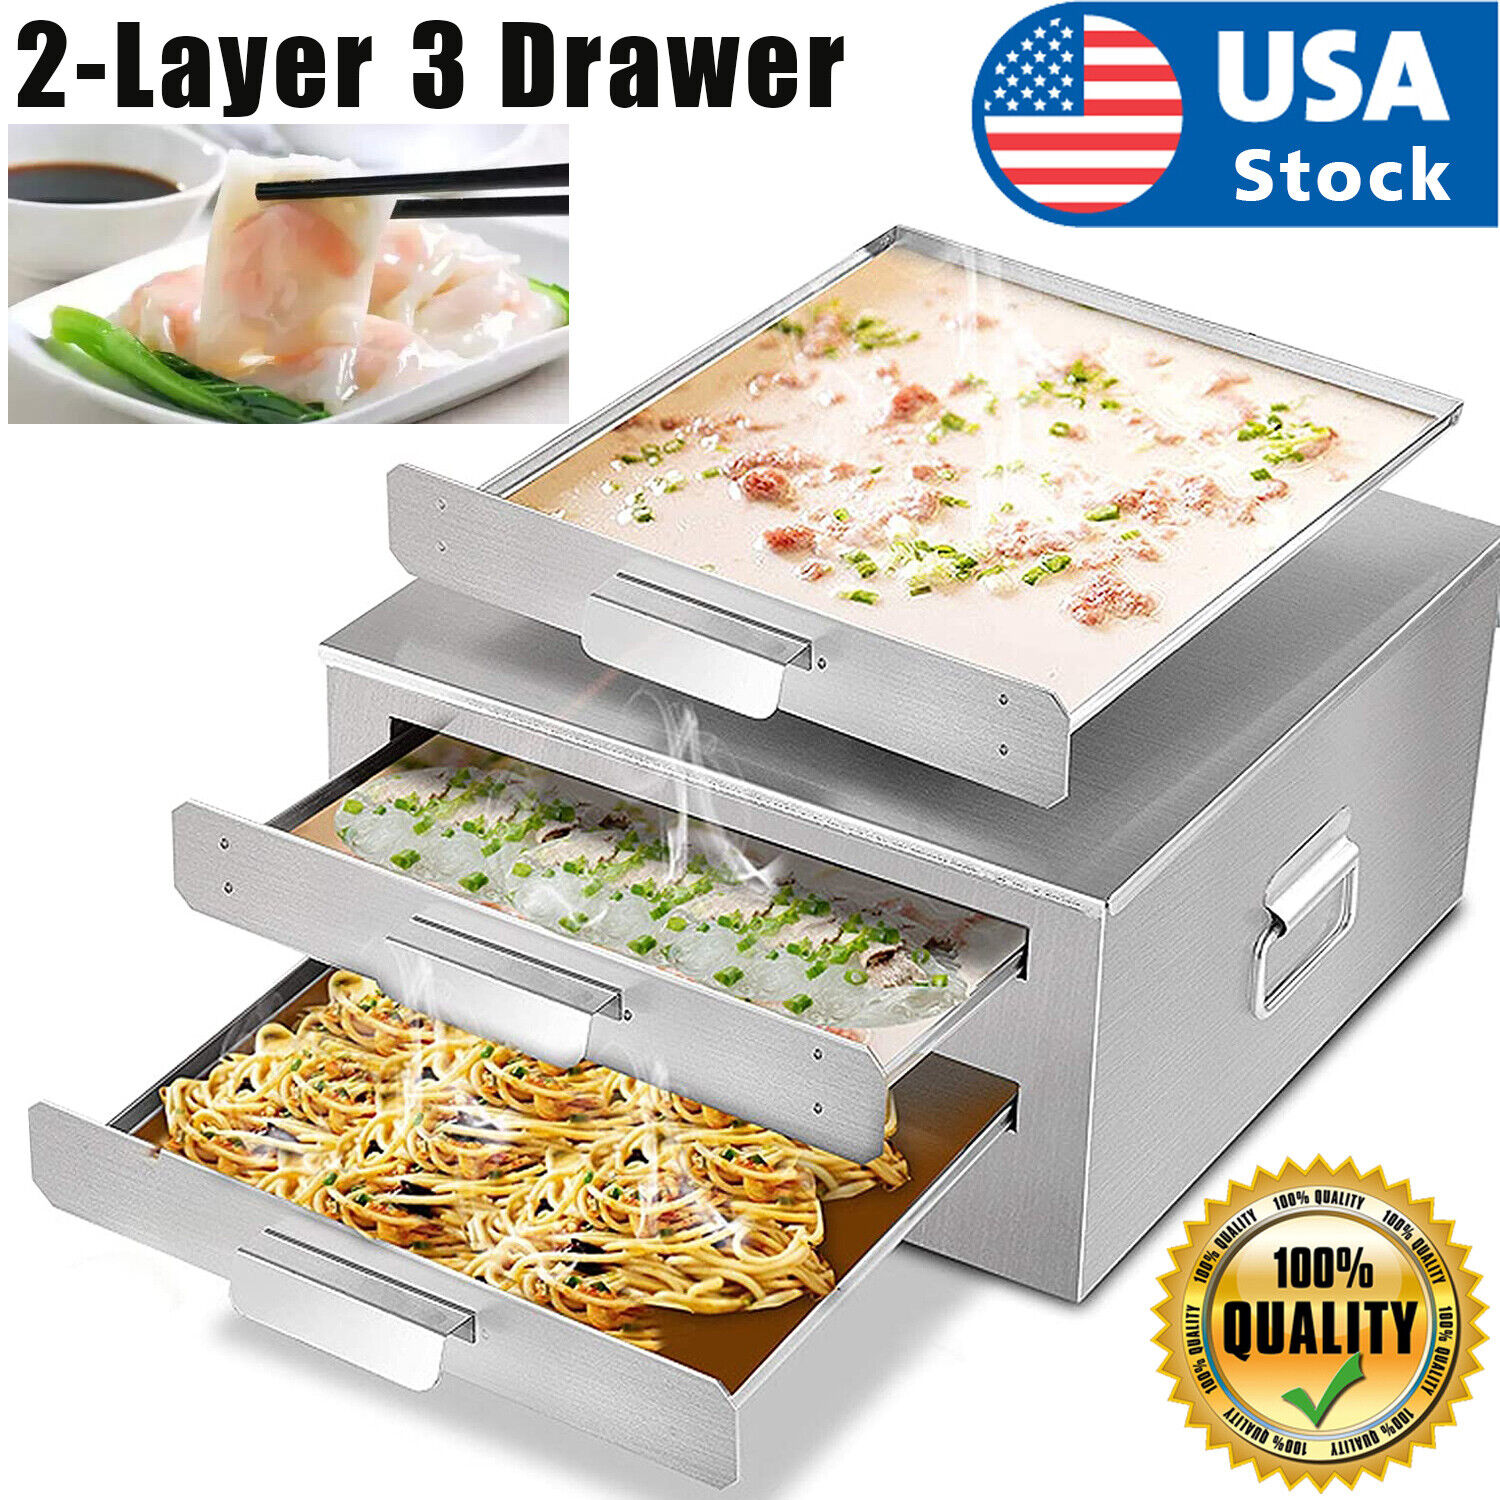 2-layer steamer drawers food steaming cooking baking rice noodle roll machine US Home & Garden